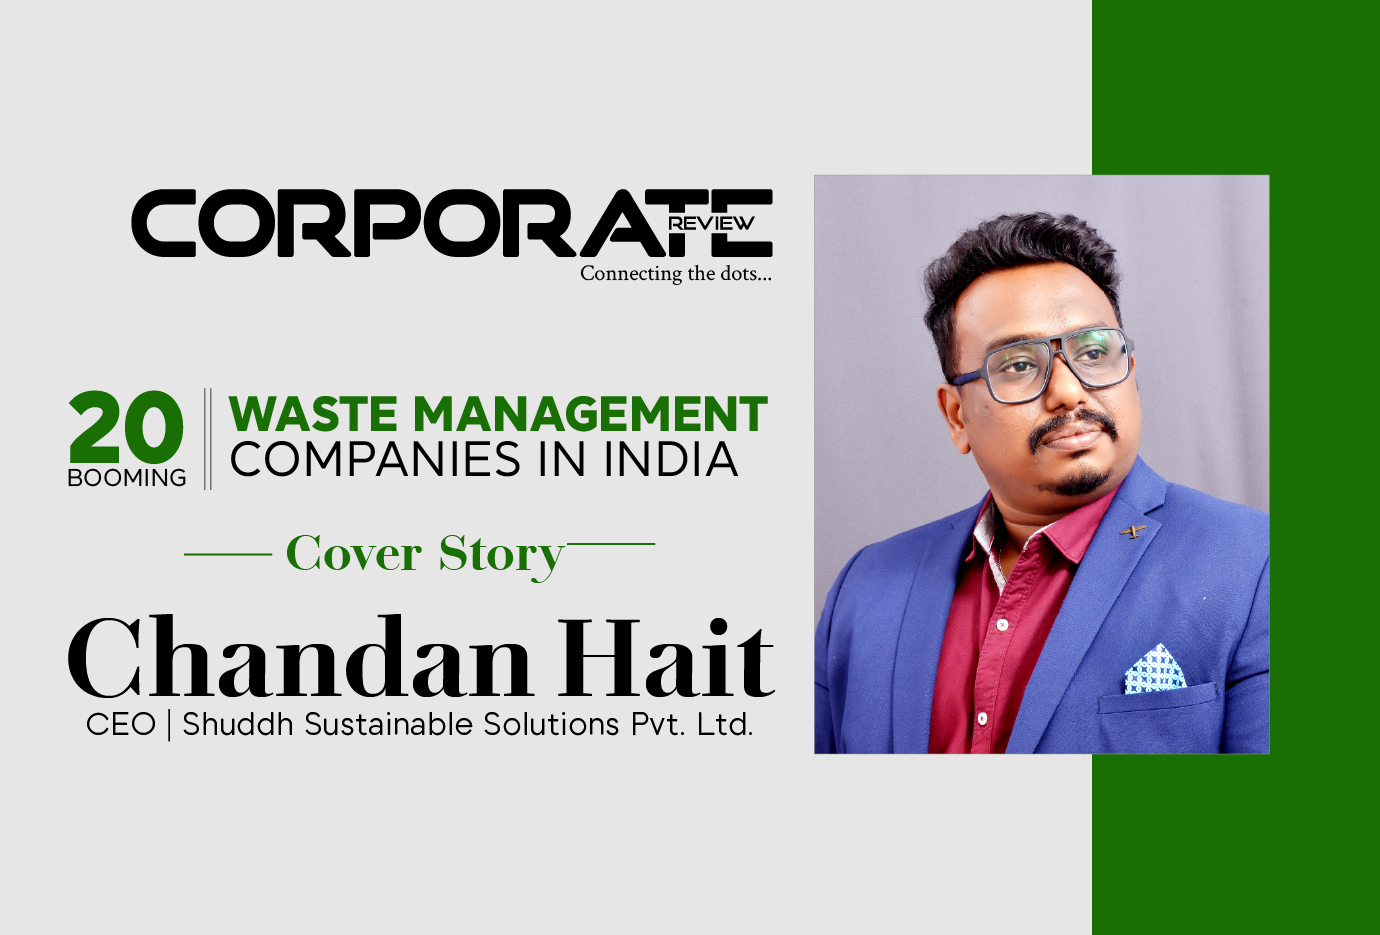 Putting the planet first: Shuddh Sustainable Solutions Pvt. Ltd. on a mission towards effective Waste Management